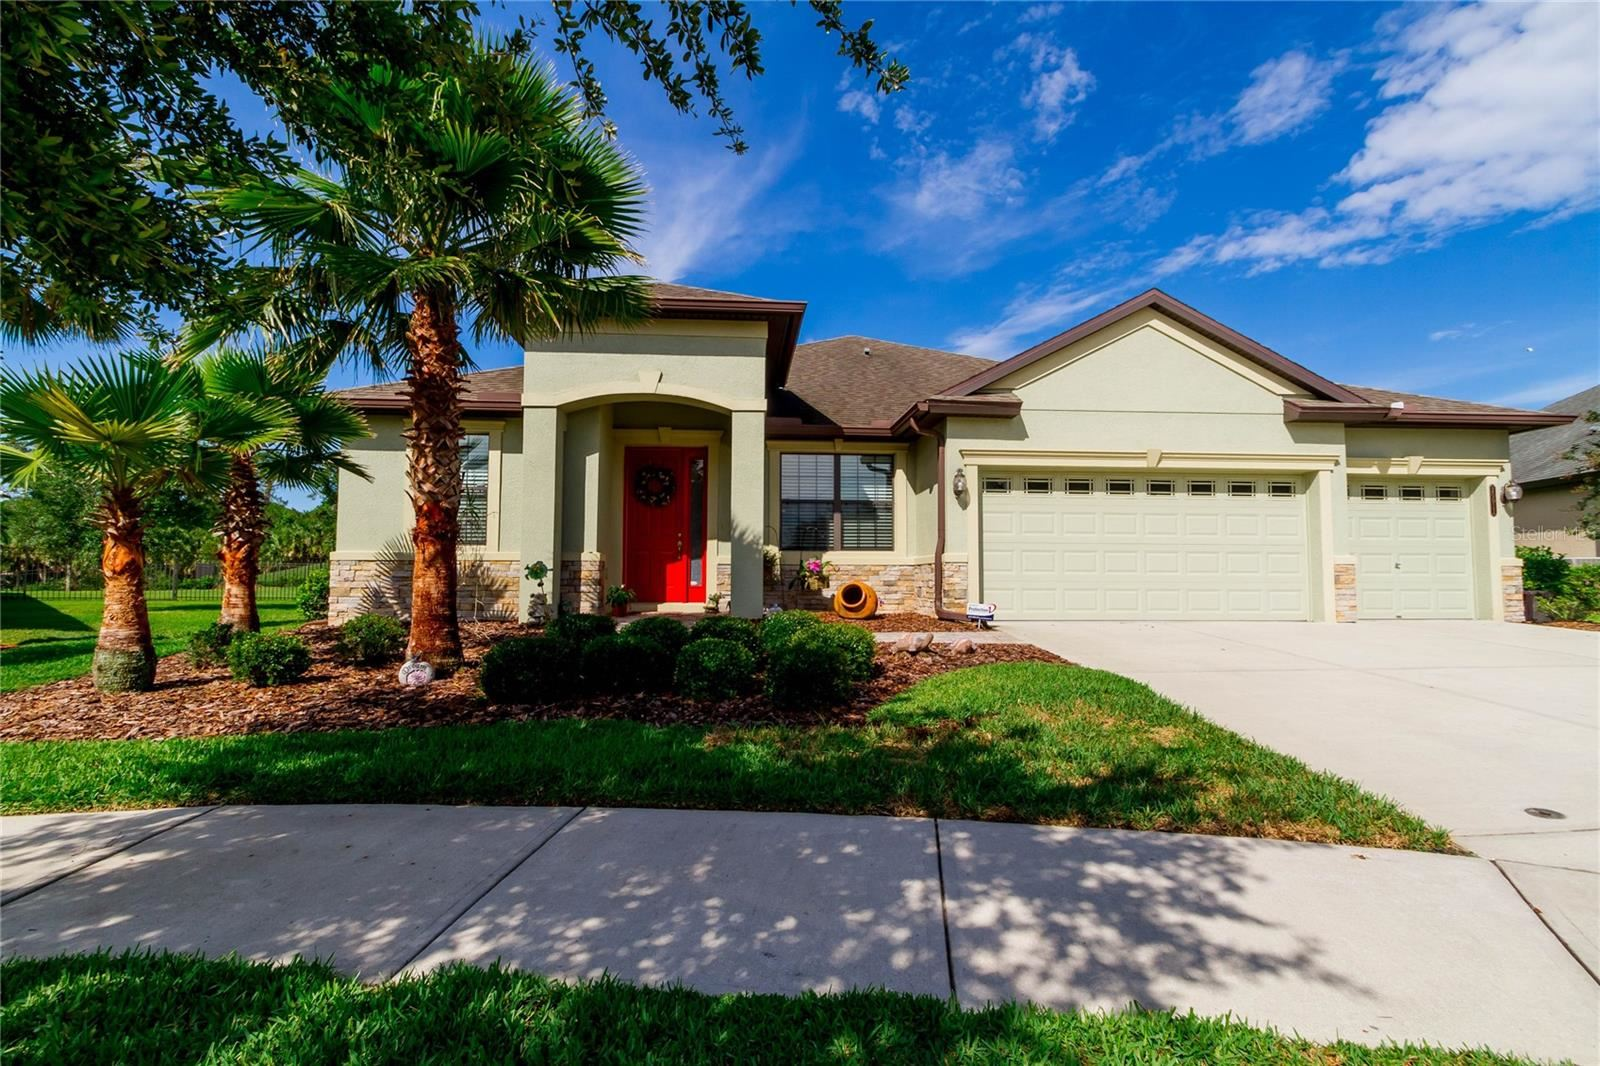 20011 OUTPOST POINT DRIVE, Tampa, FL 33647 - MLS#: T3327389